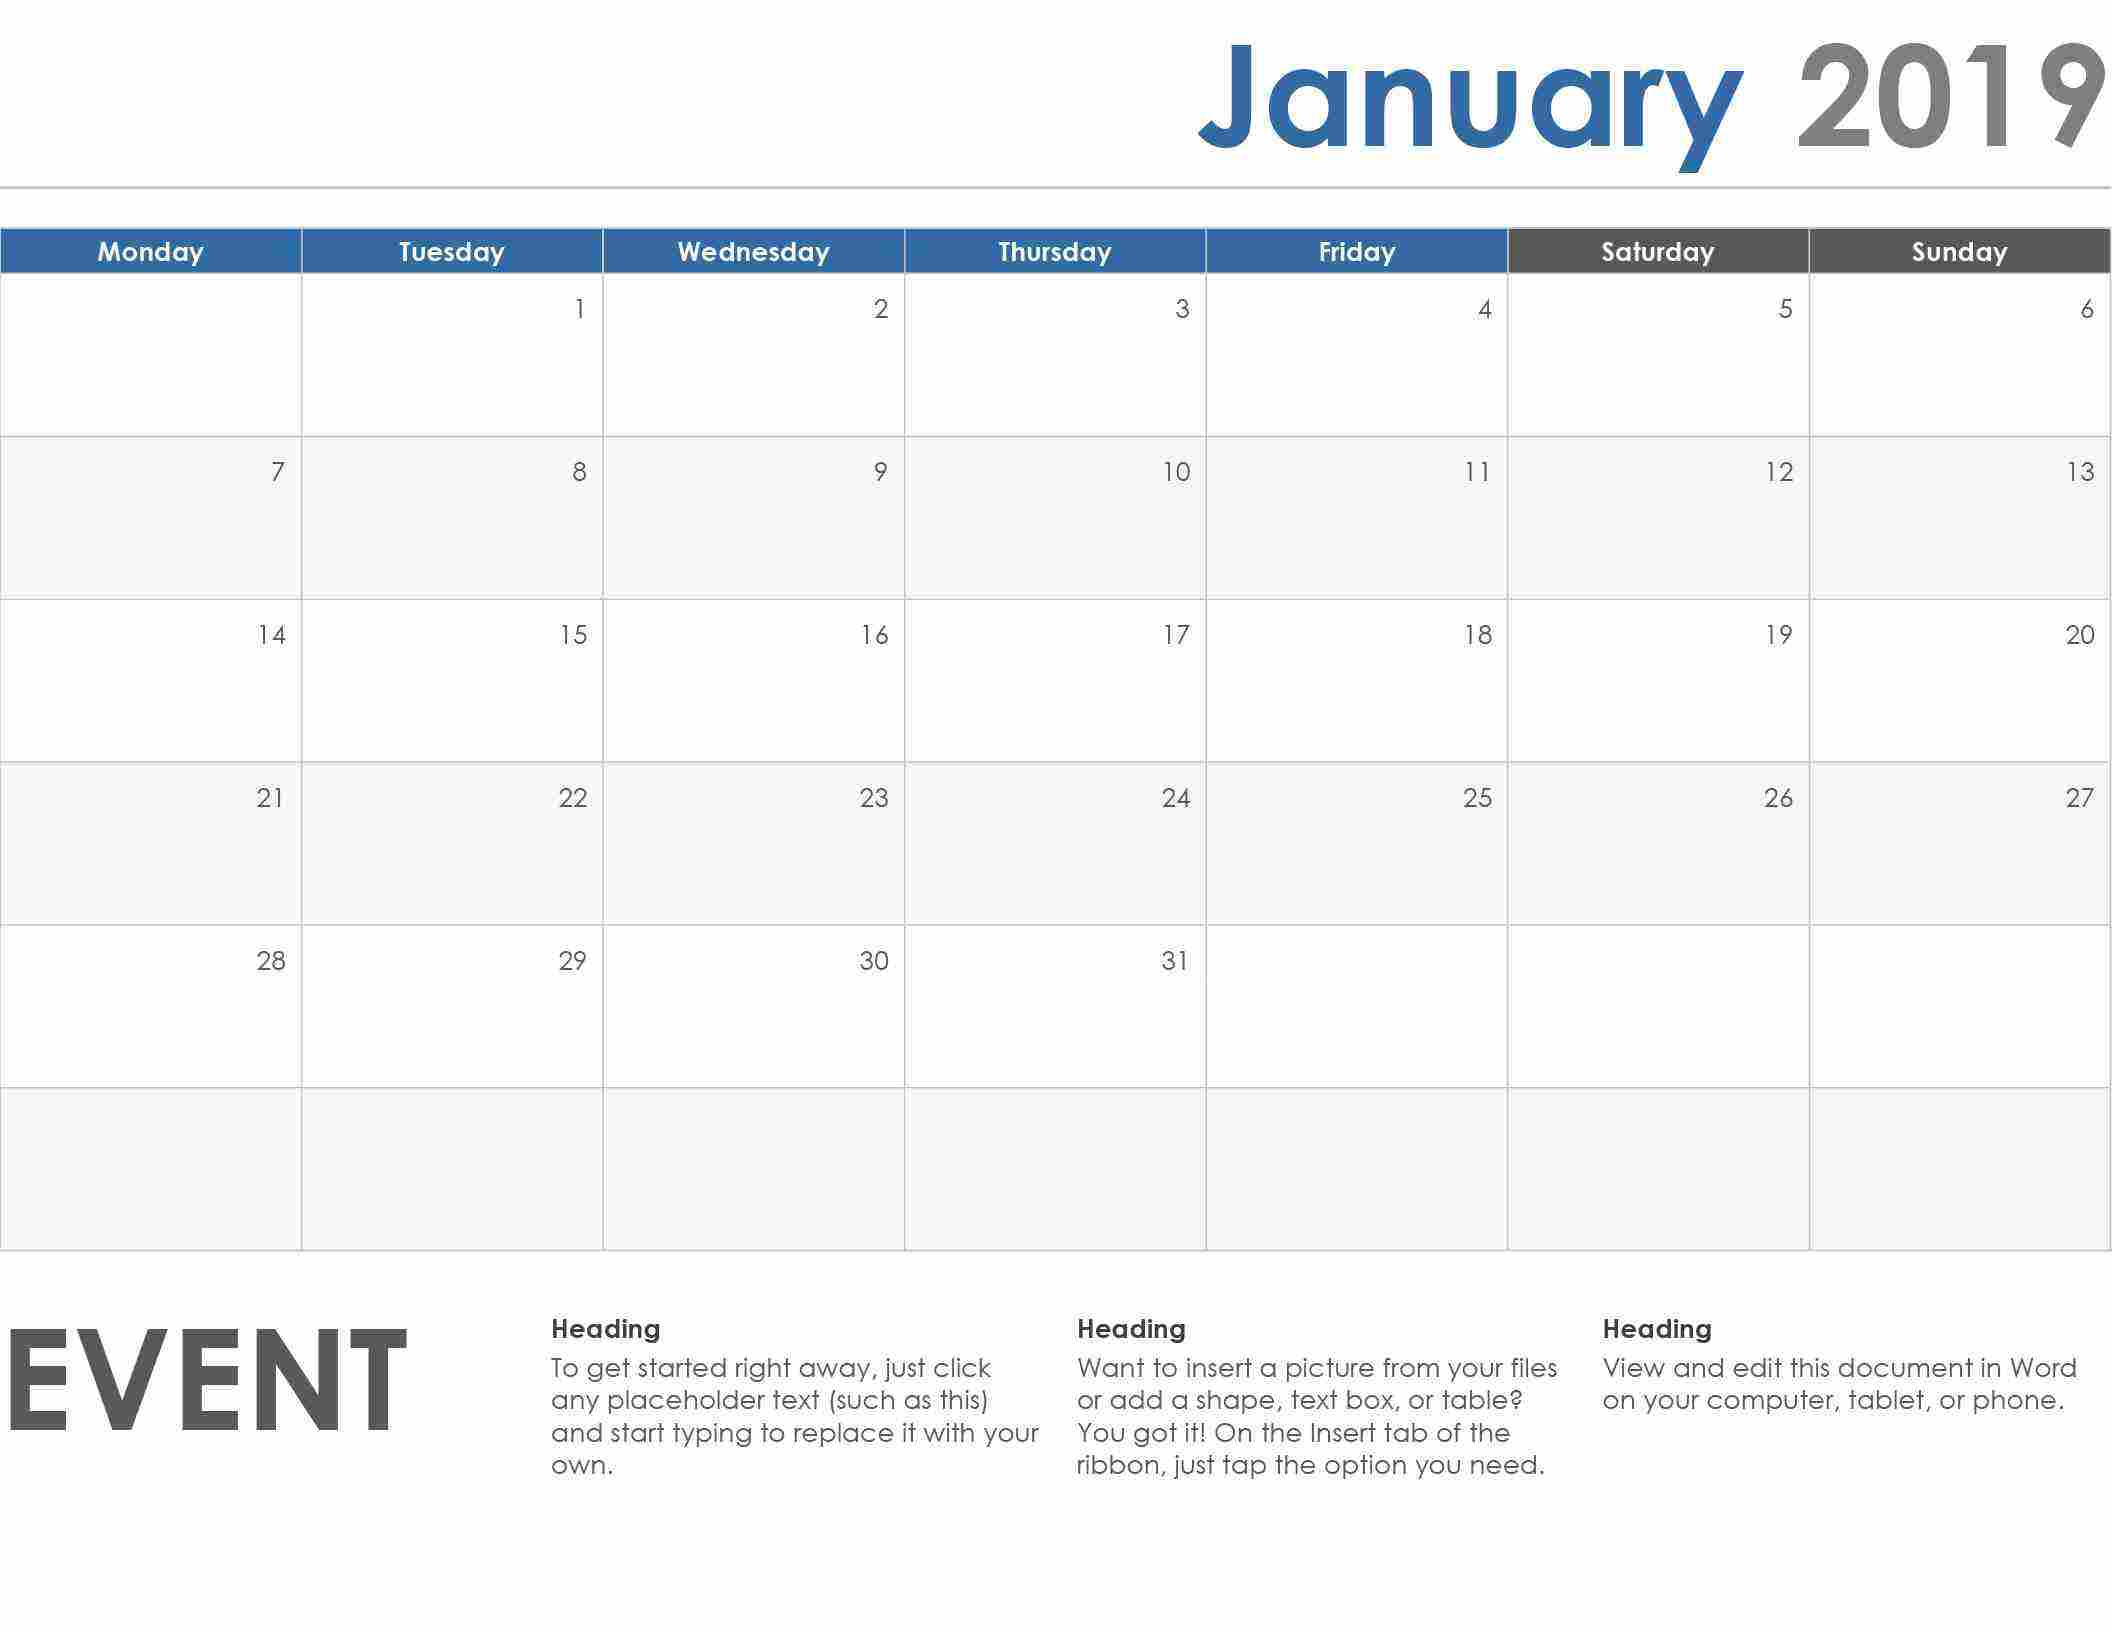 Free Weekly Schedule Templates For Word Templates within Free Weekly Schedule